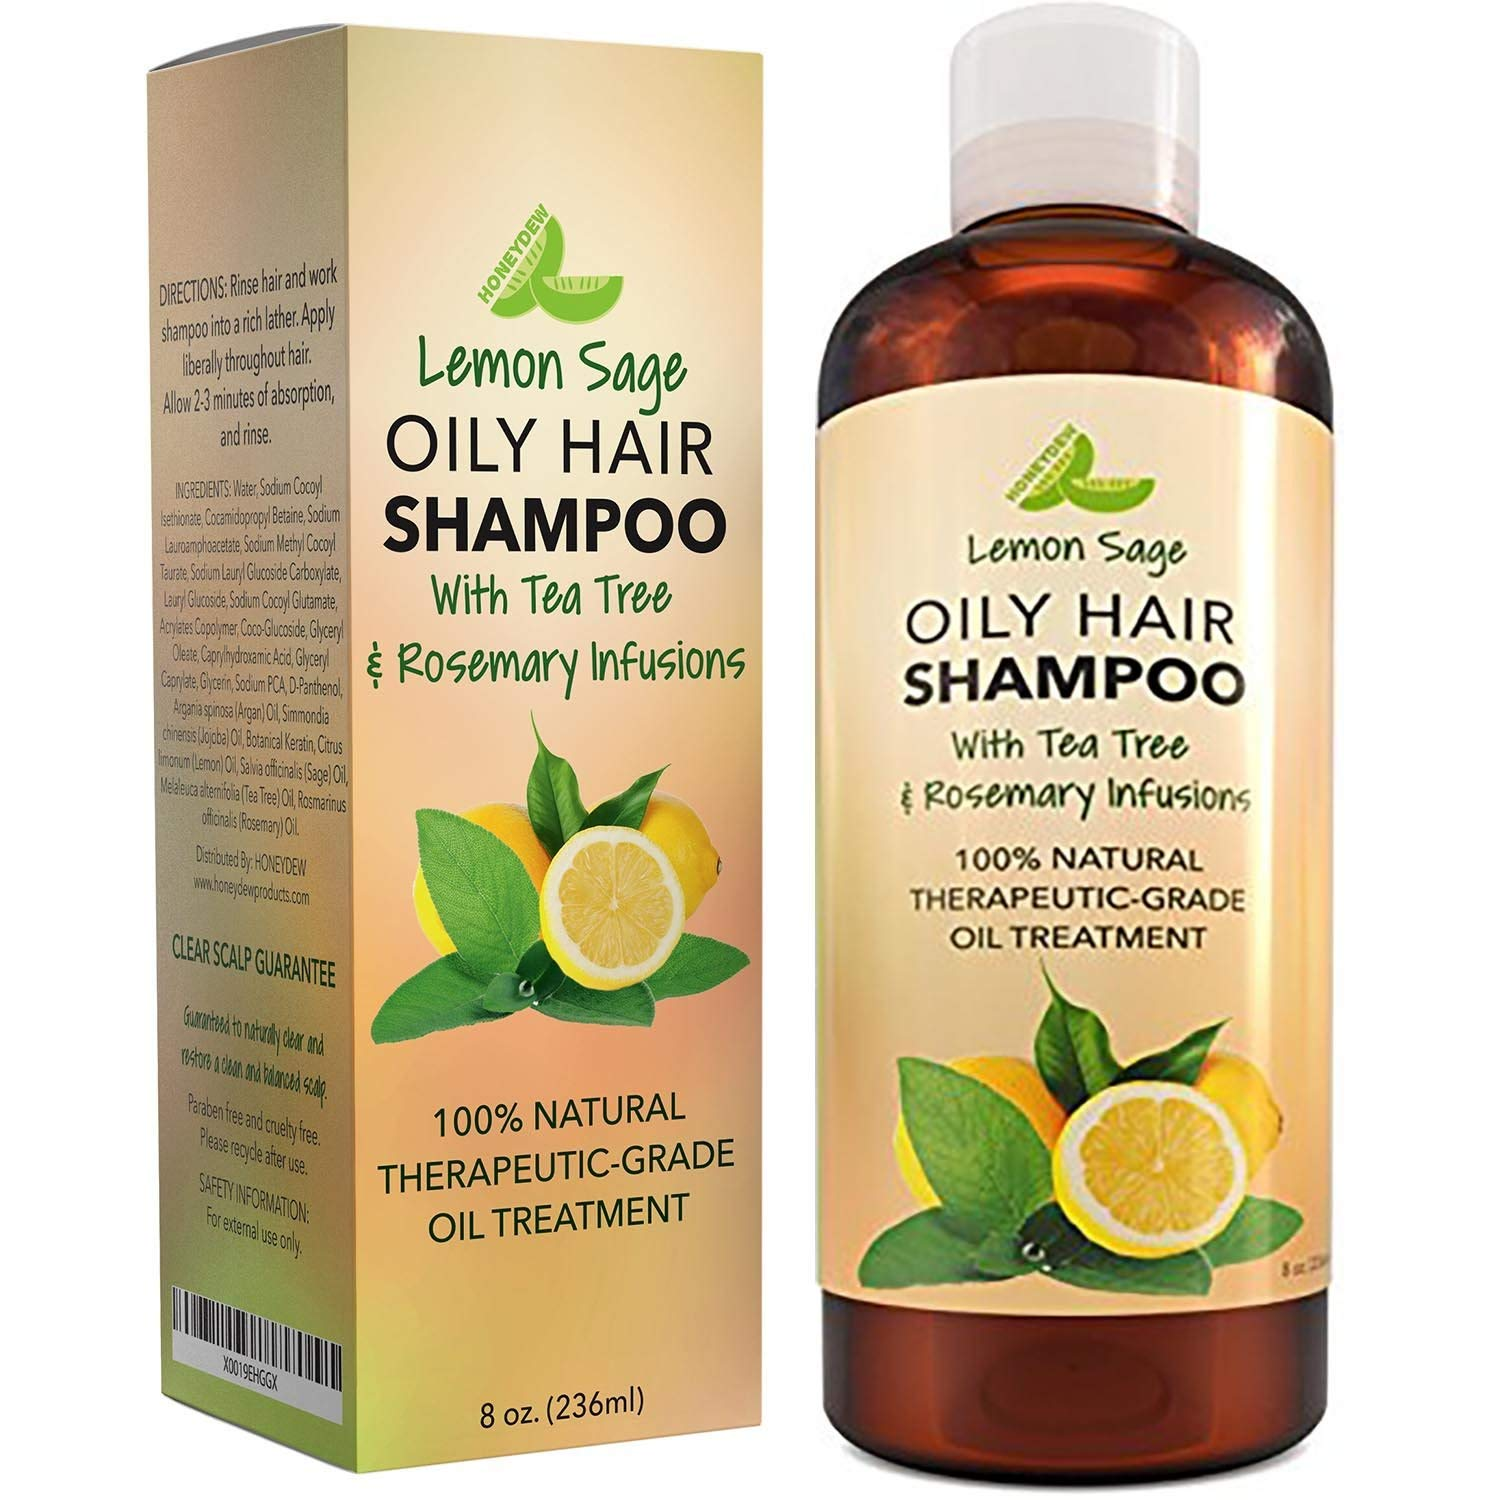 Lemon Sage Shampoo for Oily Hair - Natural Oily Hair Shampoo for Greasy Hair with Lemon and Tea Tree Oil for Hair and Scalp Care - Deep Cleansing Natural Clarifying Shampoo Sulfate Free Formula